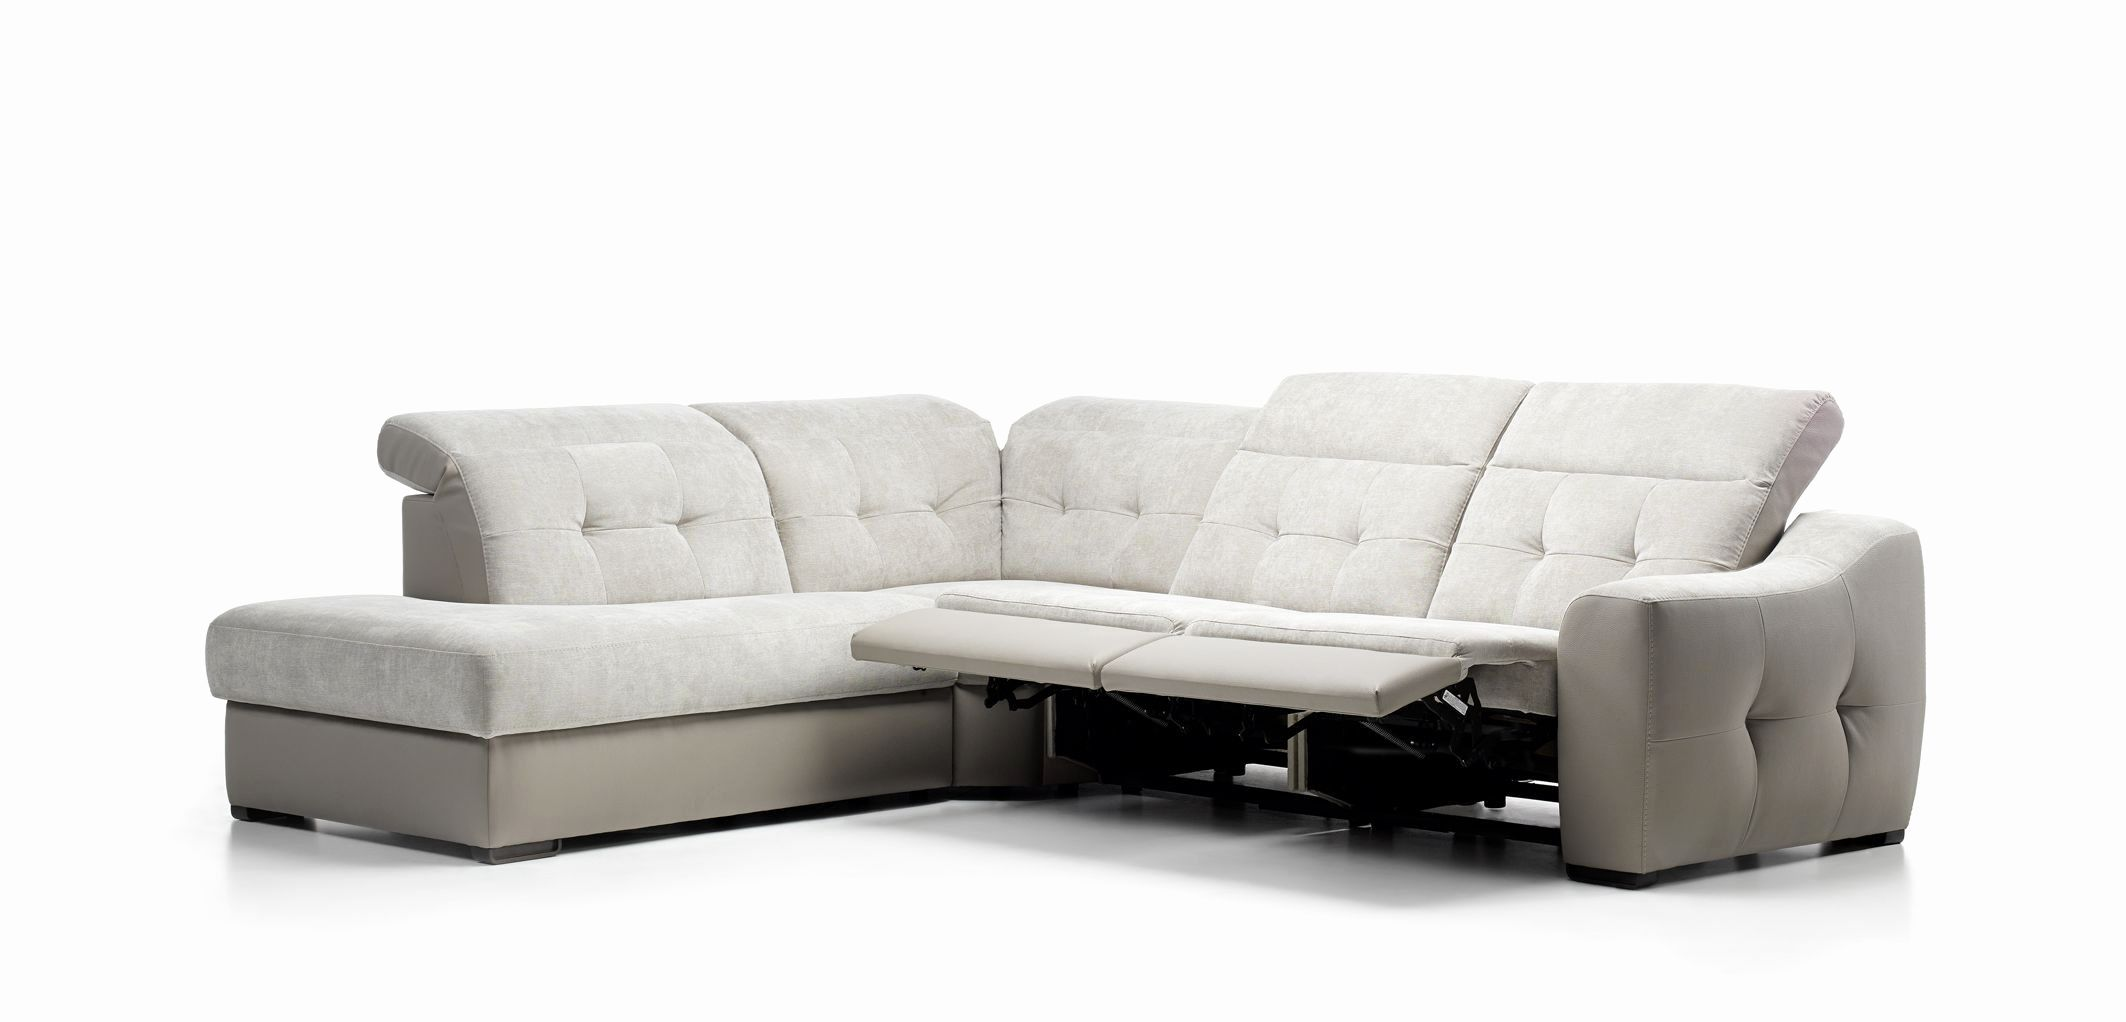 Beautiful Reclining Modern sofa Pictures Reclining Modern ...